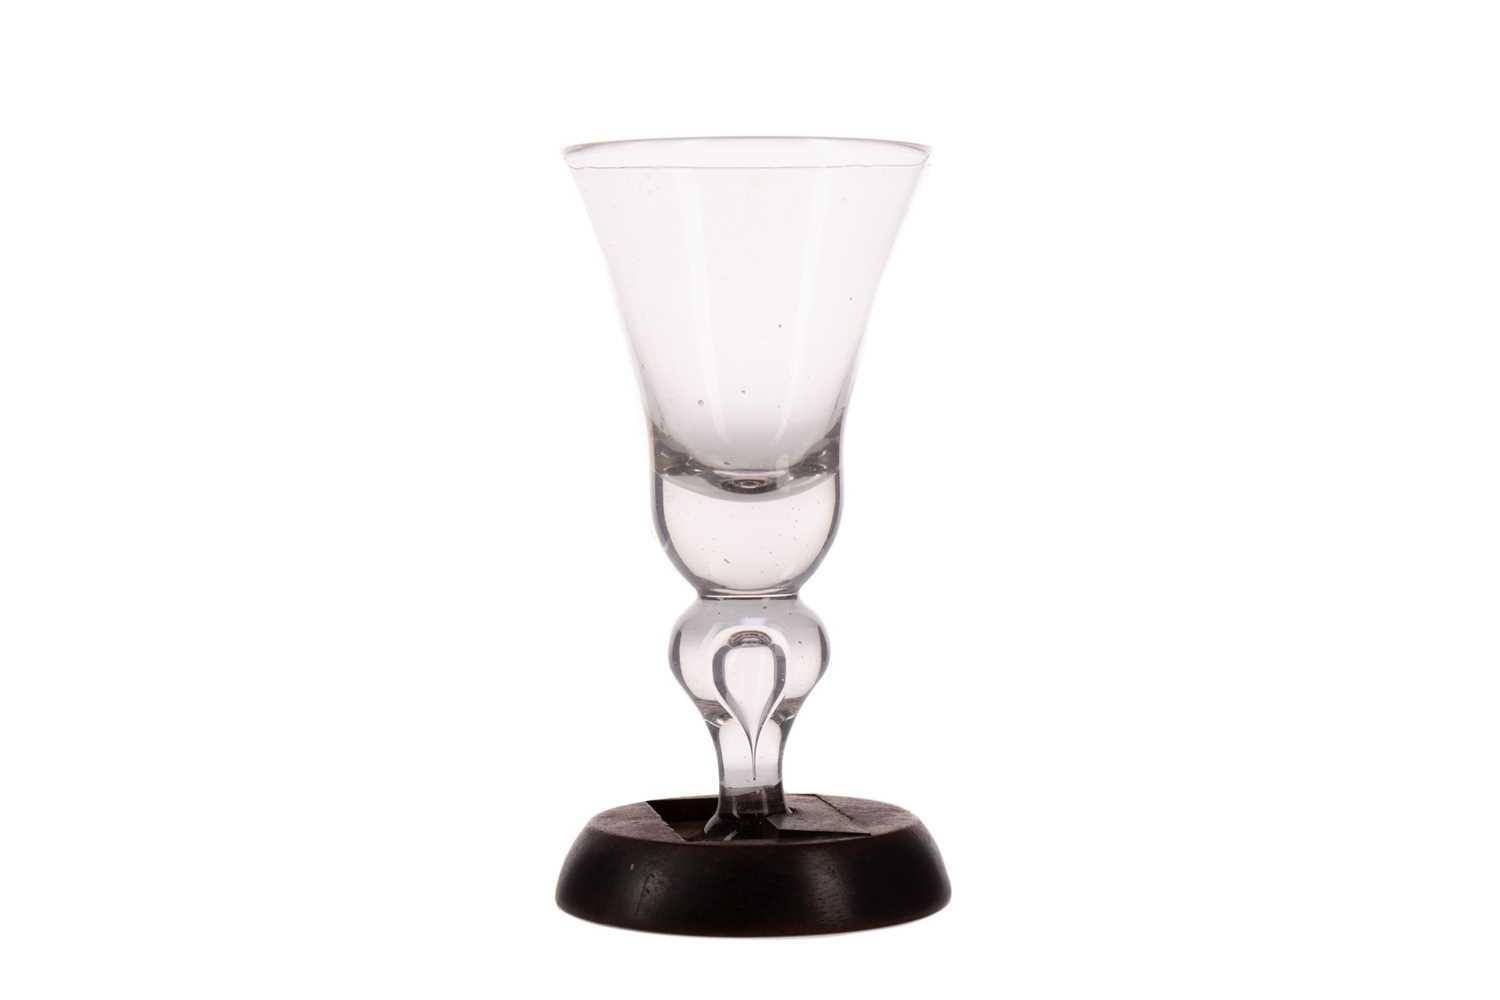 Lot 1014 - AN EARLY 18TH CENTURY NEWCASTLE HEAVY BALUSTER WINE GLASS